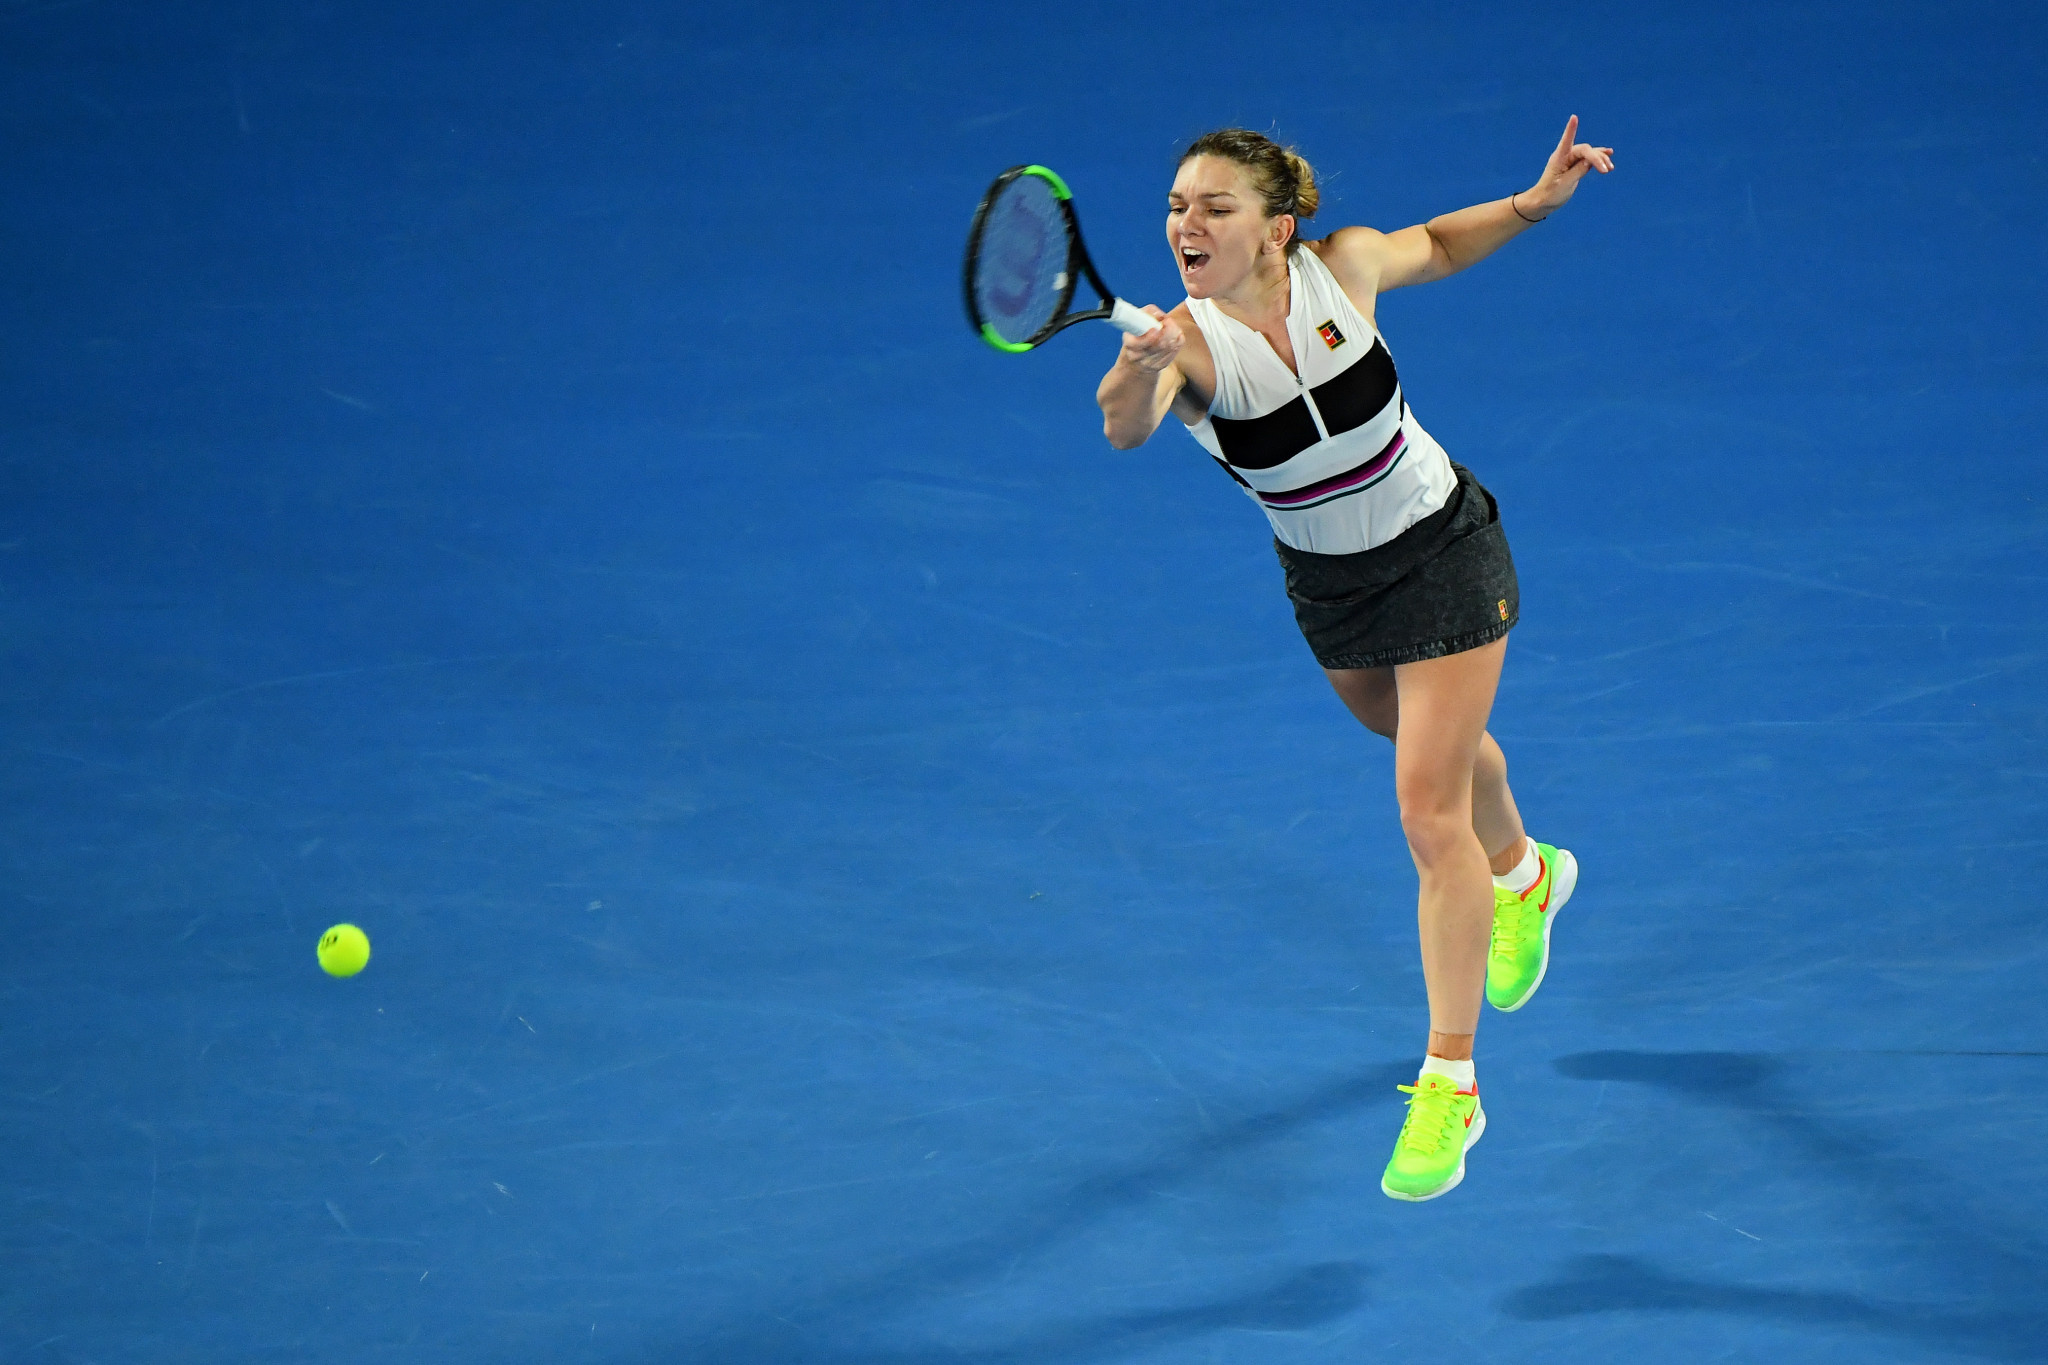 Women's world number one Simona Halep survived a scare before she eventually reached the third round ©Getty Images